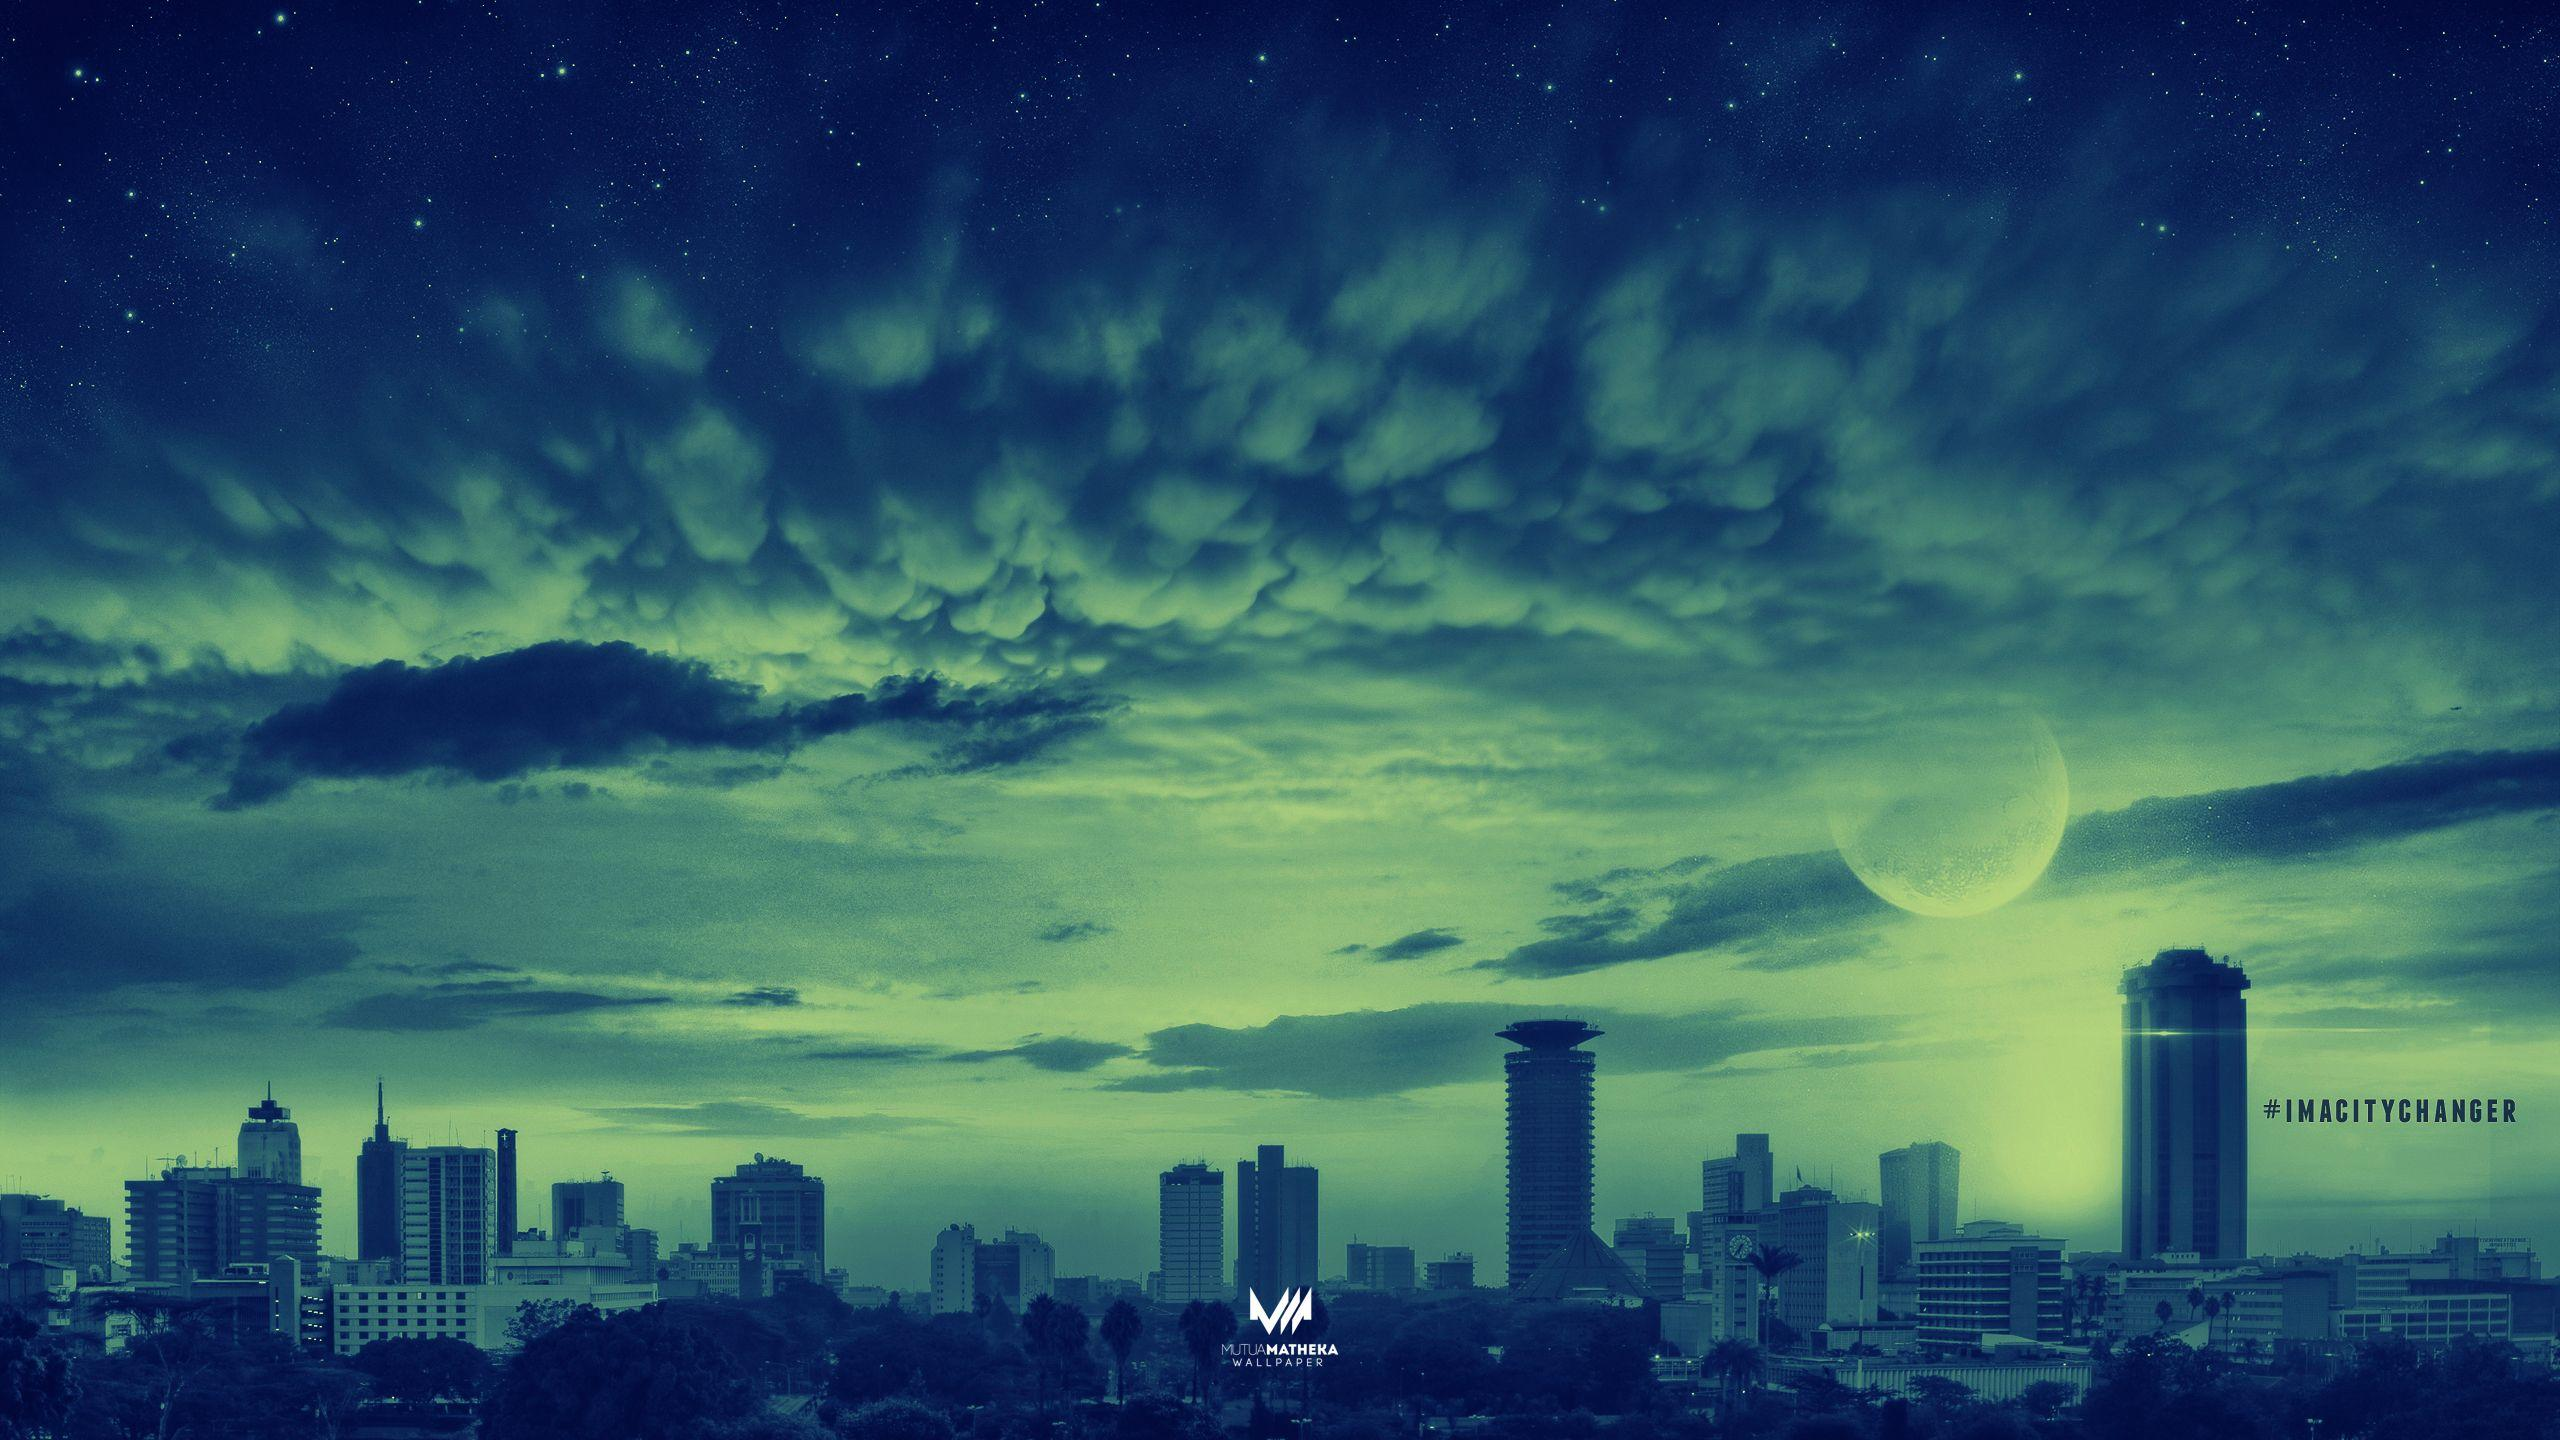 Wallpaper Monday [81] – Apocalyptic Nairobi | Mutua Matheka